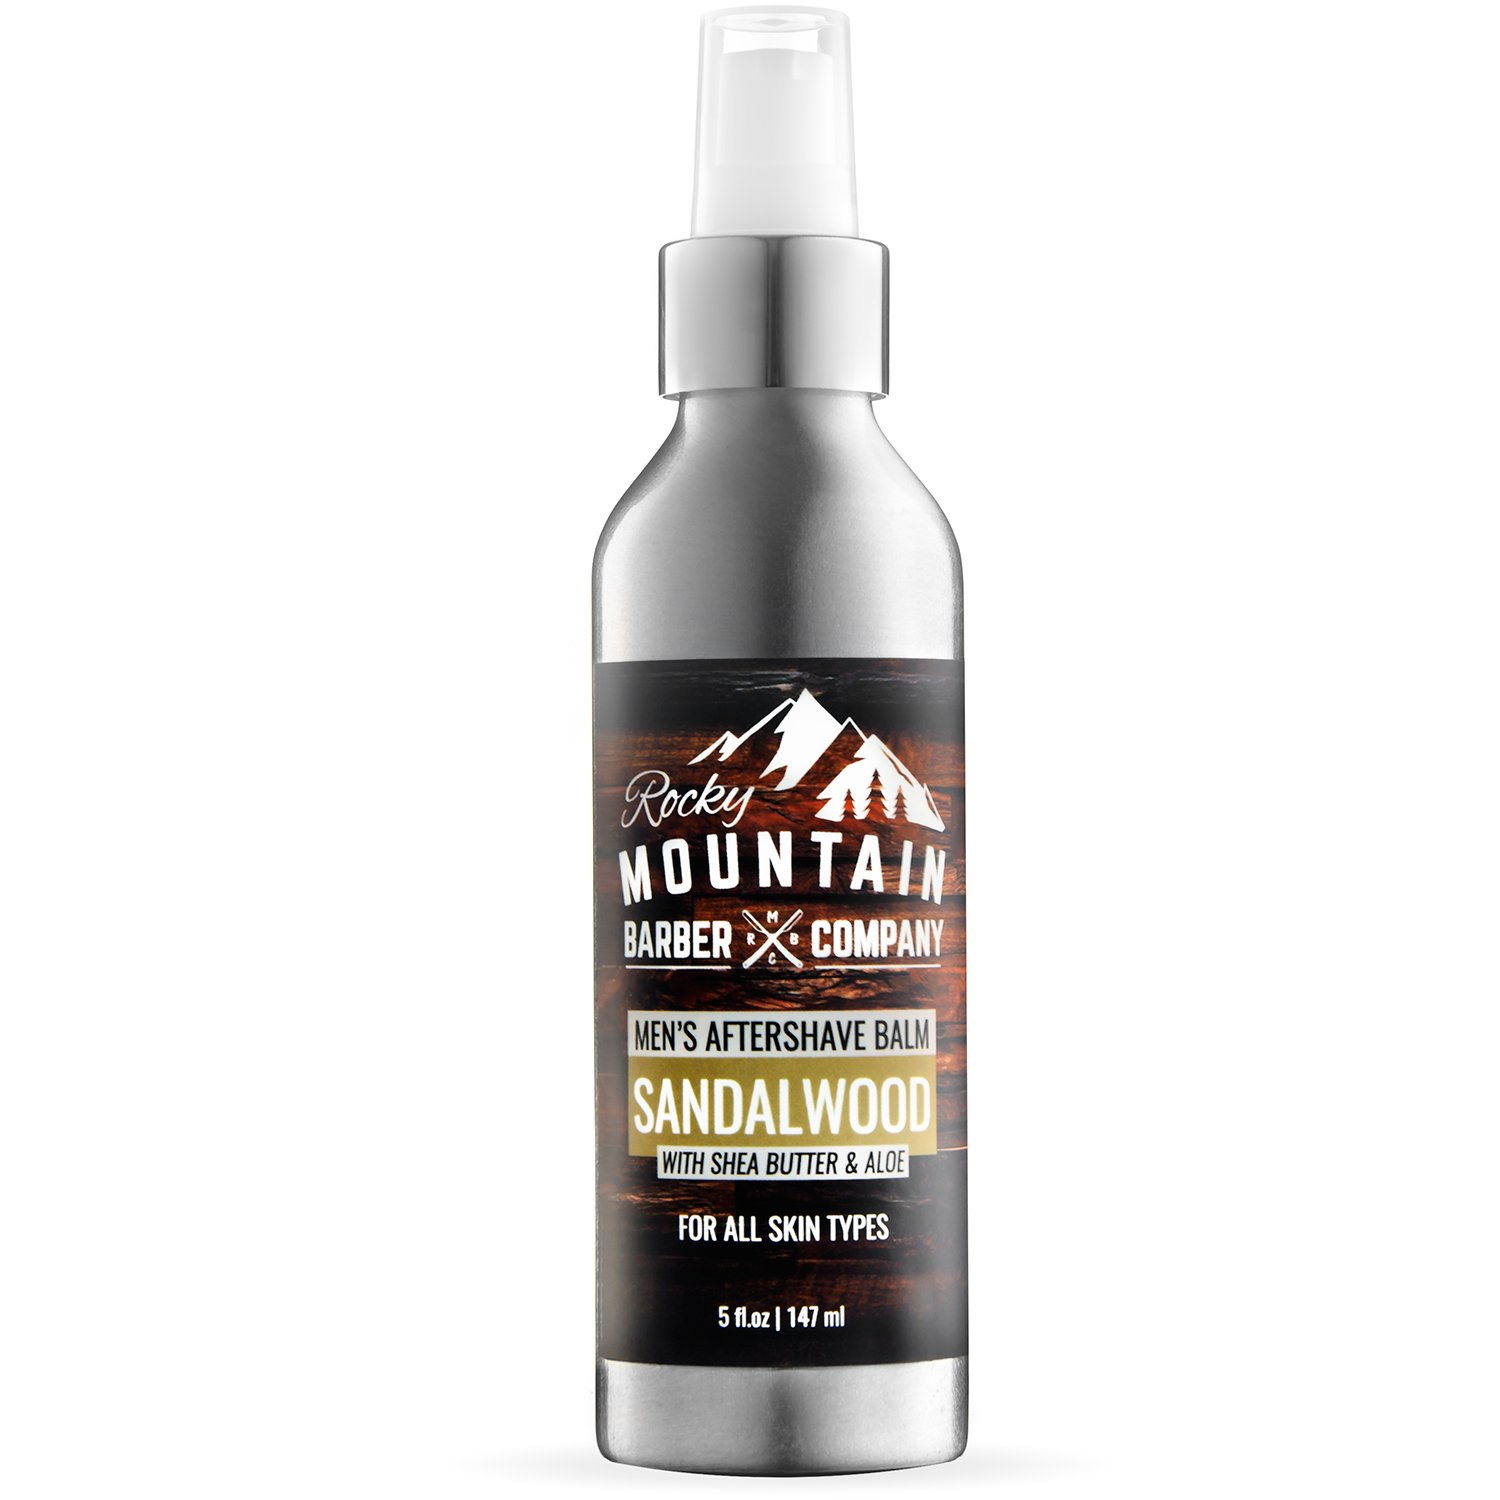 Aftershave Balm For Men - Canadian Made With Sandalwood Essential Oil - 5 Ounce - Moisturizer Face Cream by Rocky Mountain Barber Company